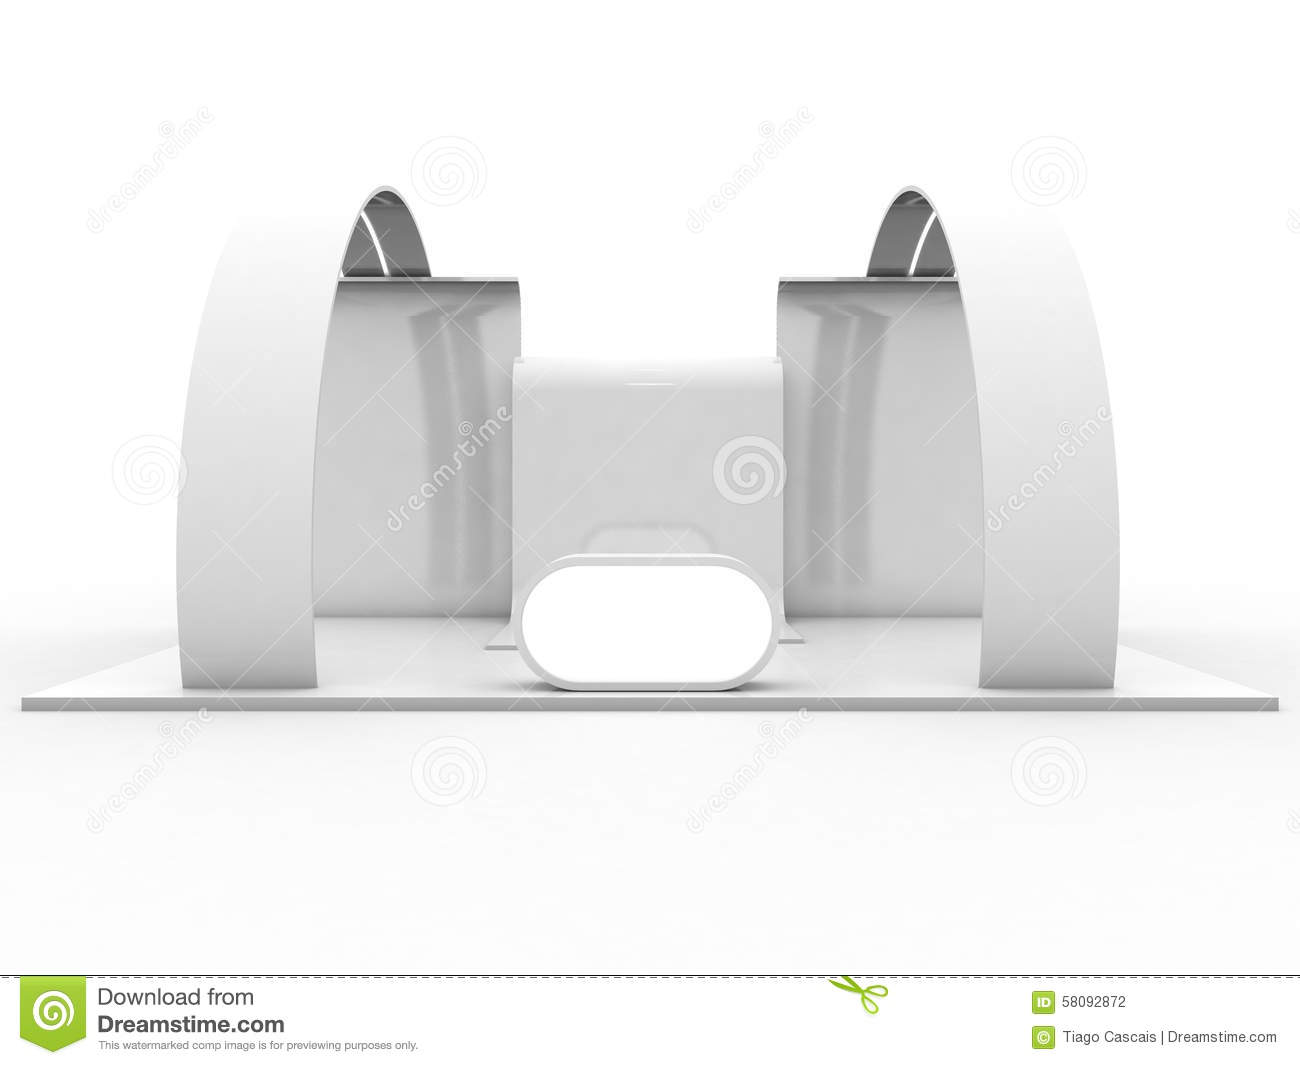 Exhibition Stand Wallpaper : Exhibition stand stock illustration image